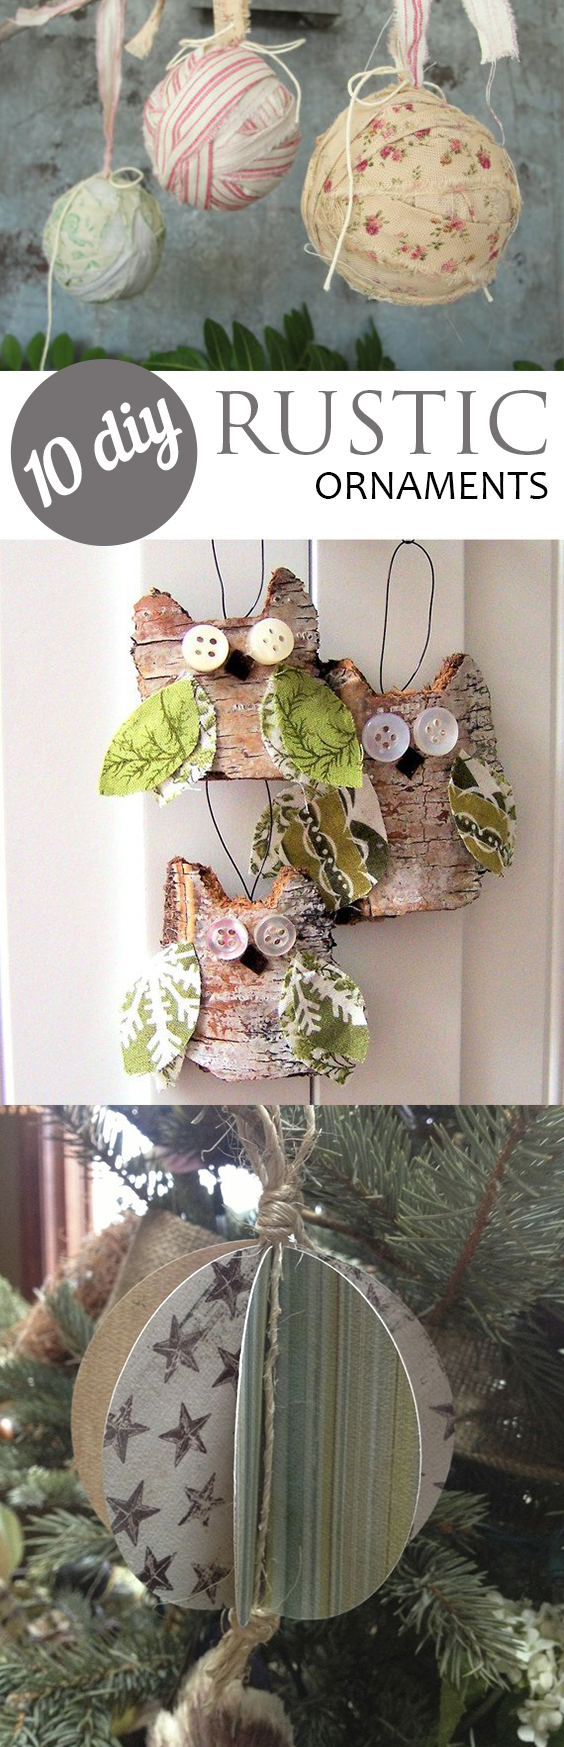 Rustic Christmas Ornaments, Rustic Holiday Ornaments, Holiday Ornaments, DIY Christmas Tree Ornaments, Easy Holiday Ornaments, SImple DIY Christmas Ornaments, Crafts for Christmas, Popular Pin